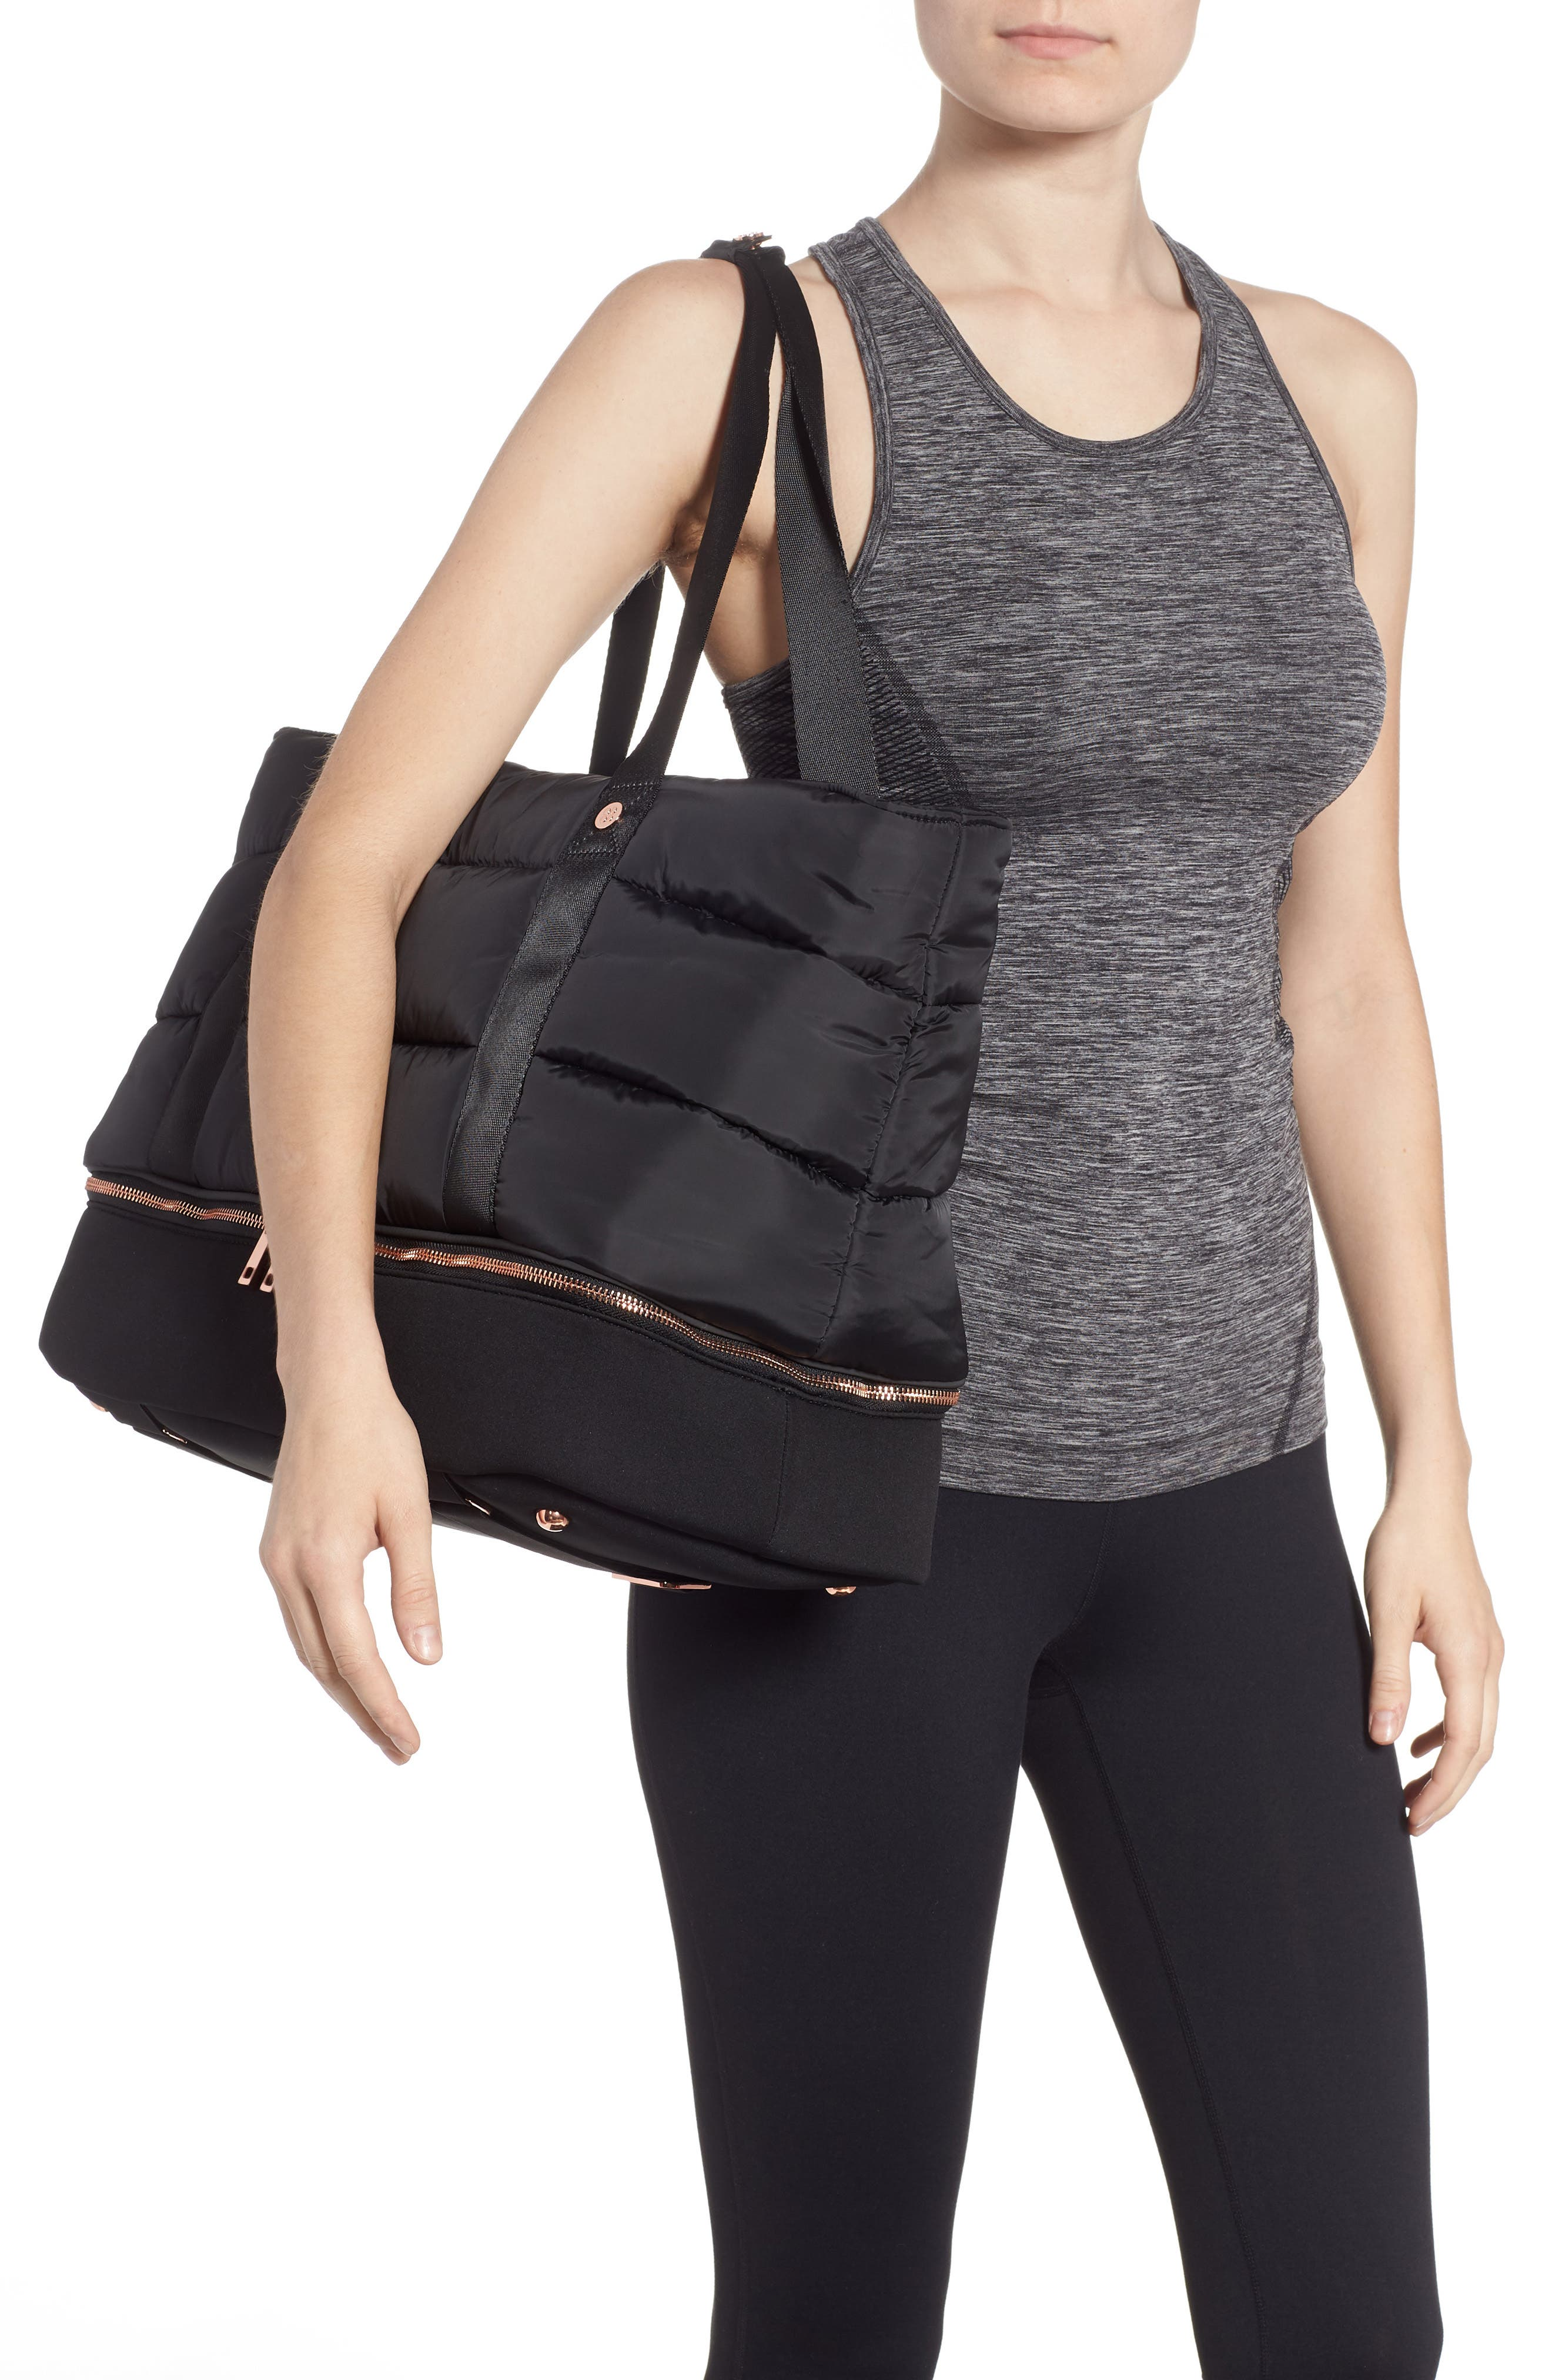 Luxe Gym Bag,                             Alternate thumbnail 2, color,                             001